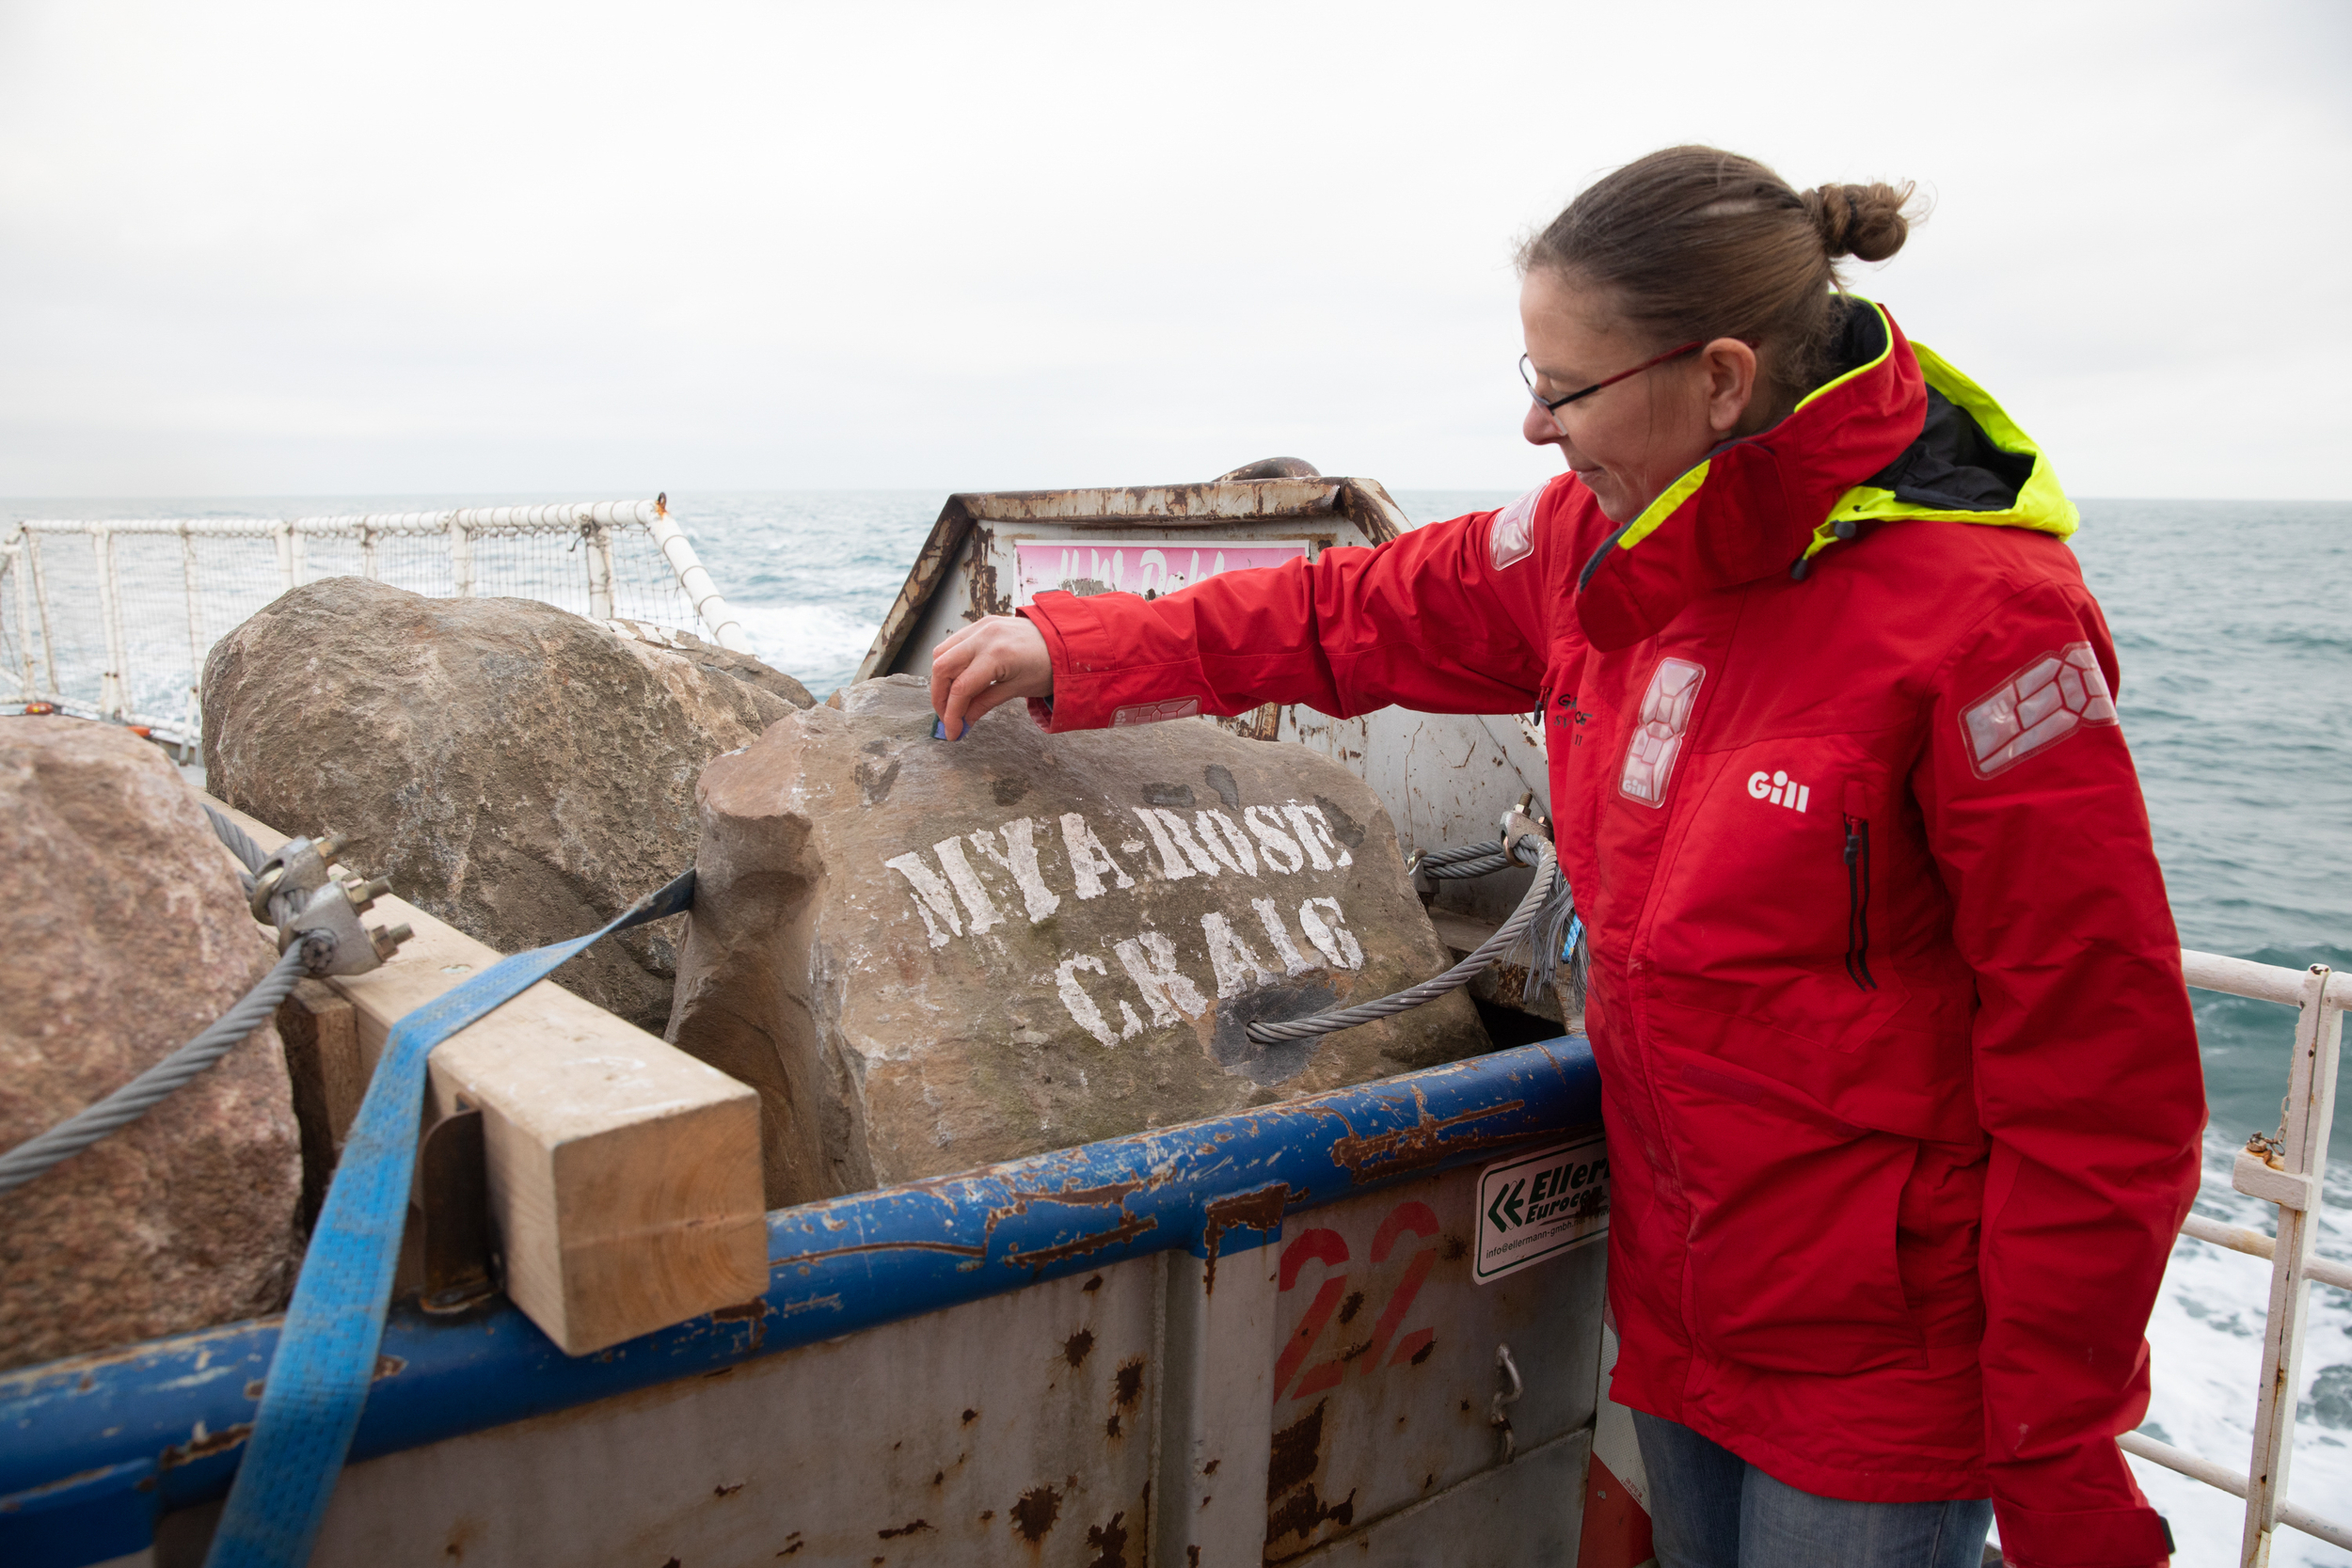 A Greenpeace crew member inspects a large boulder secured on deck, stencilled with the name Mya-Rose Craig